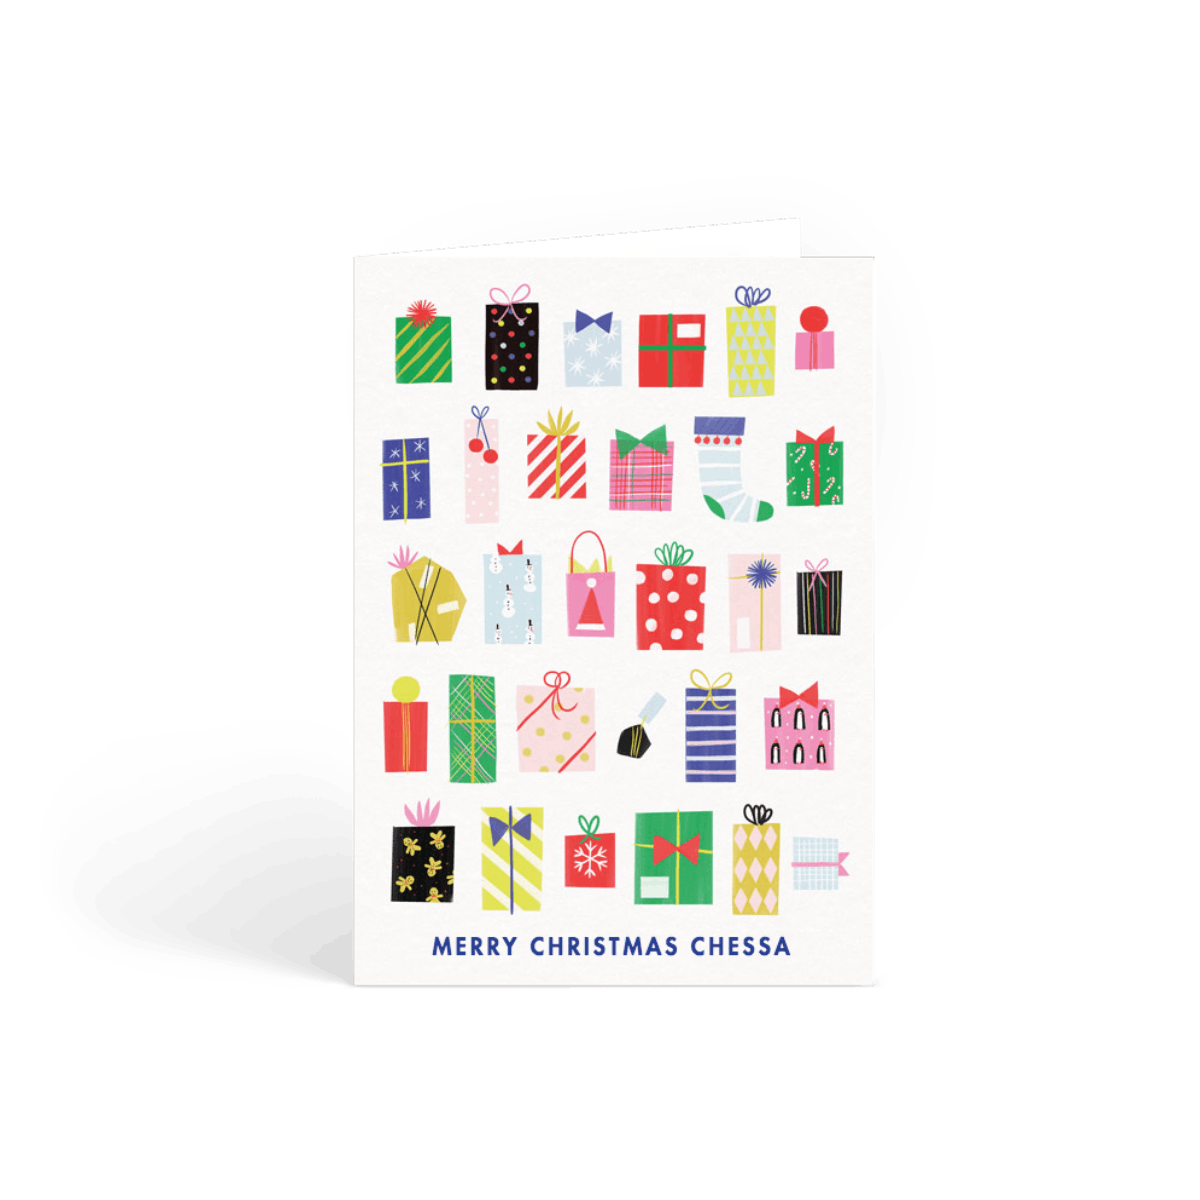 Https%3a%2f%2fwww.papier.com%2fproduct image%2f30854%2f2%2fchristmas presents 7774 front 1542366087.png?ixlib=rb 1.1